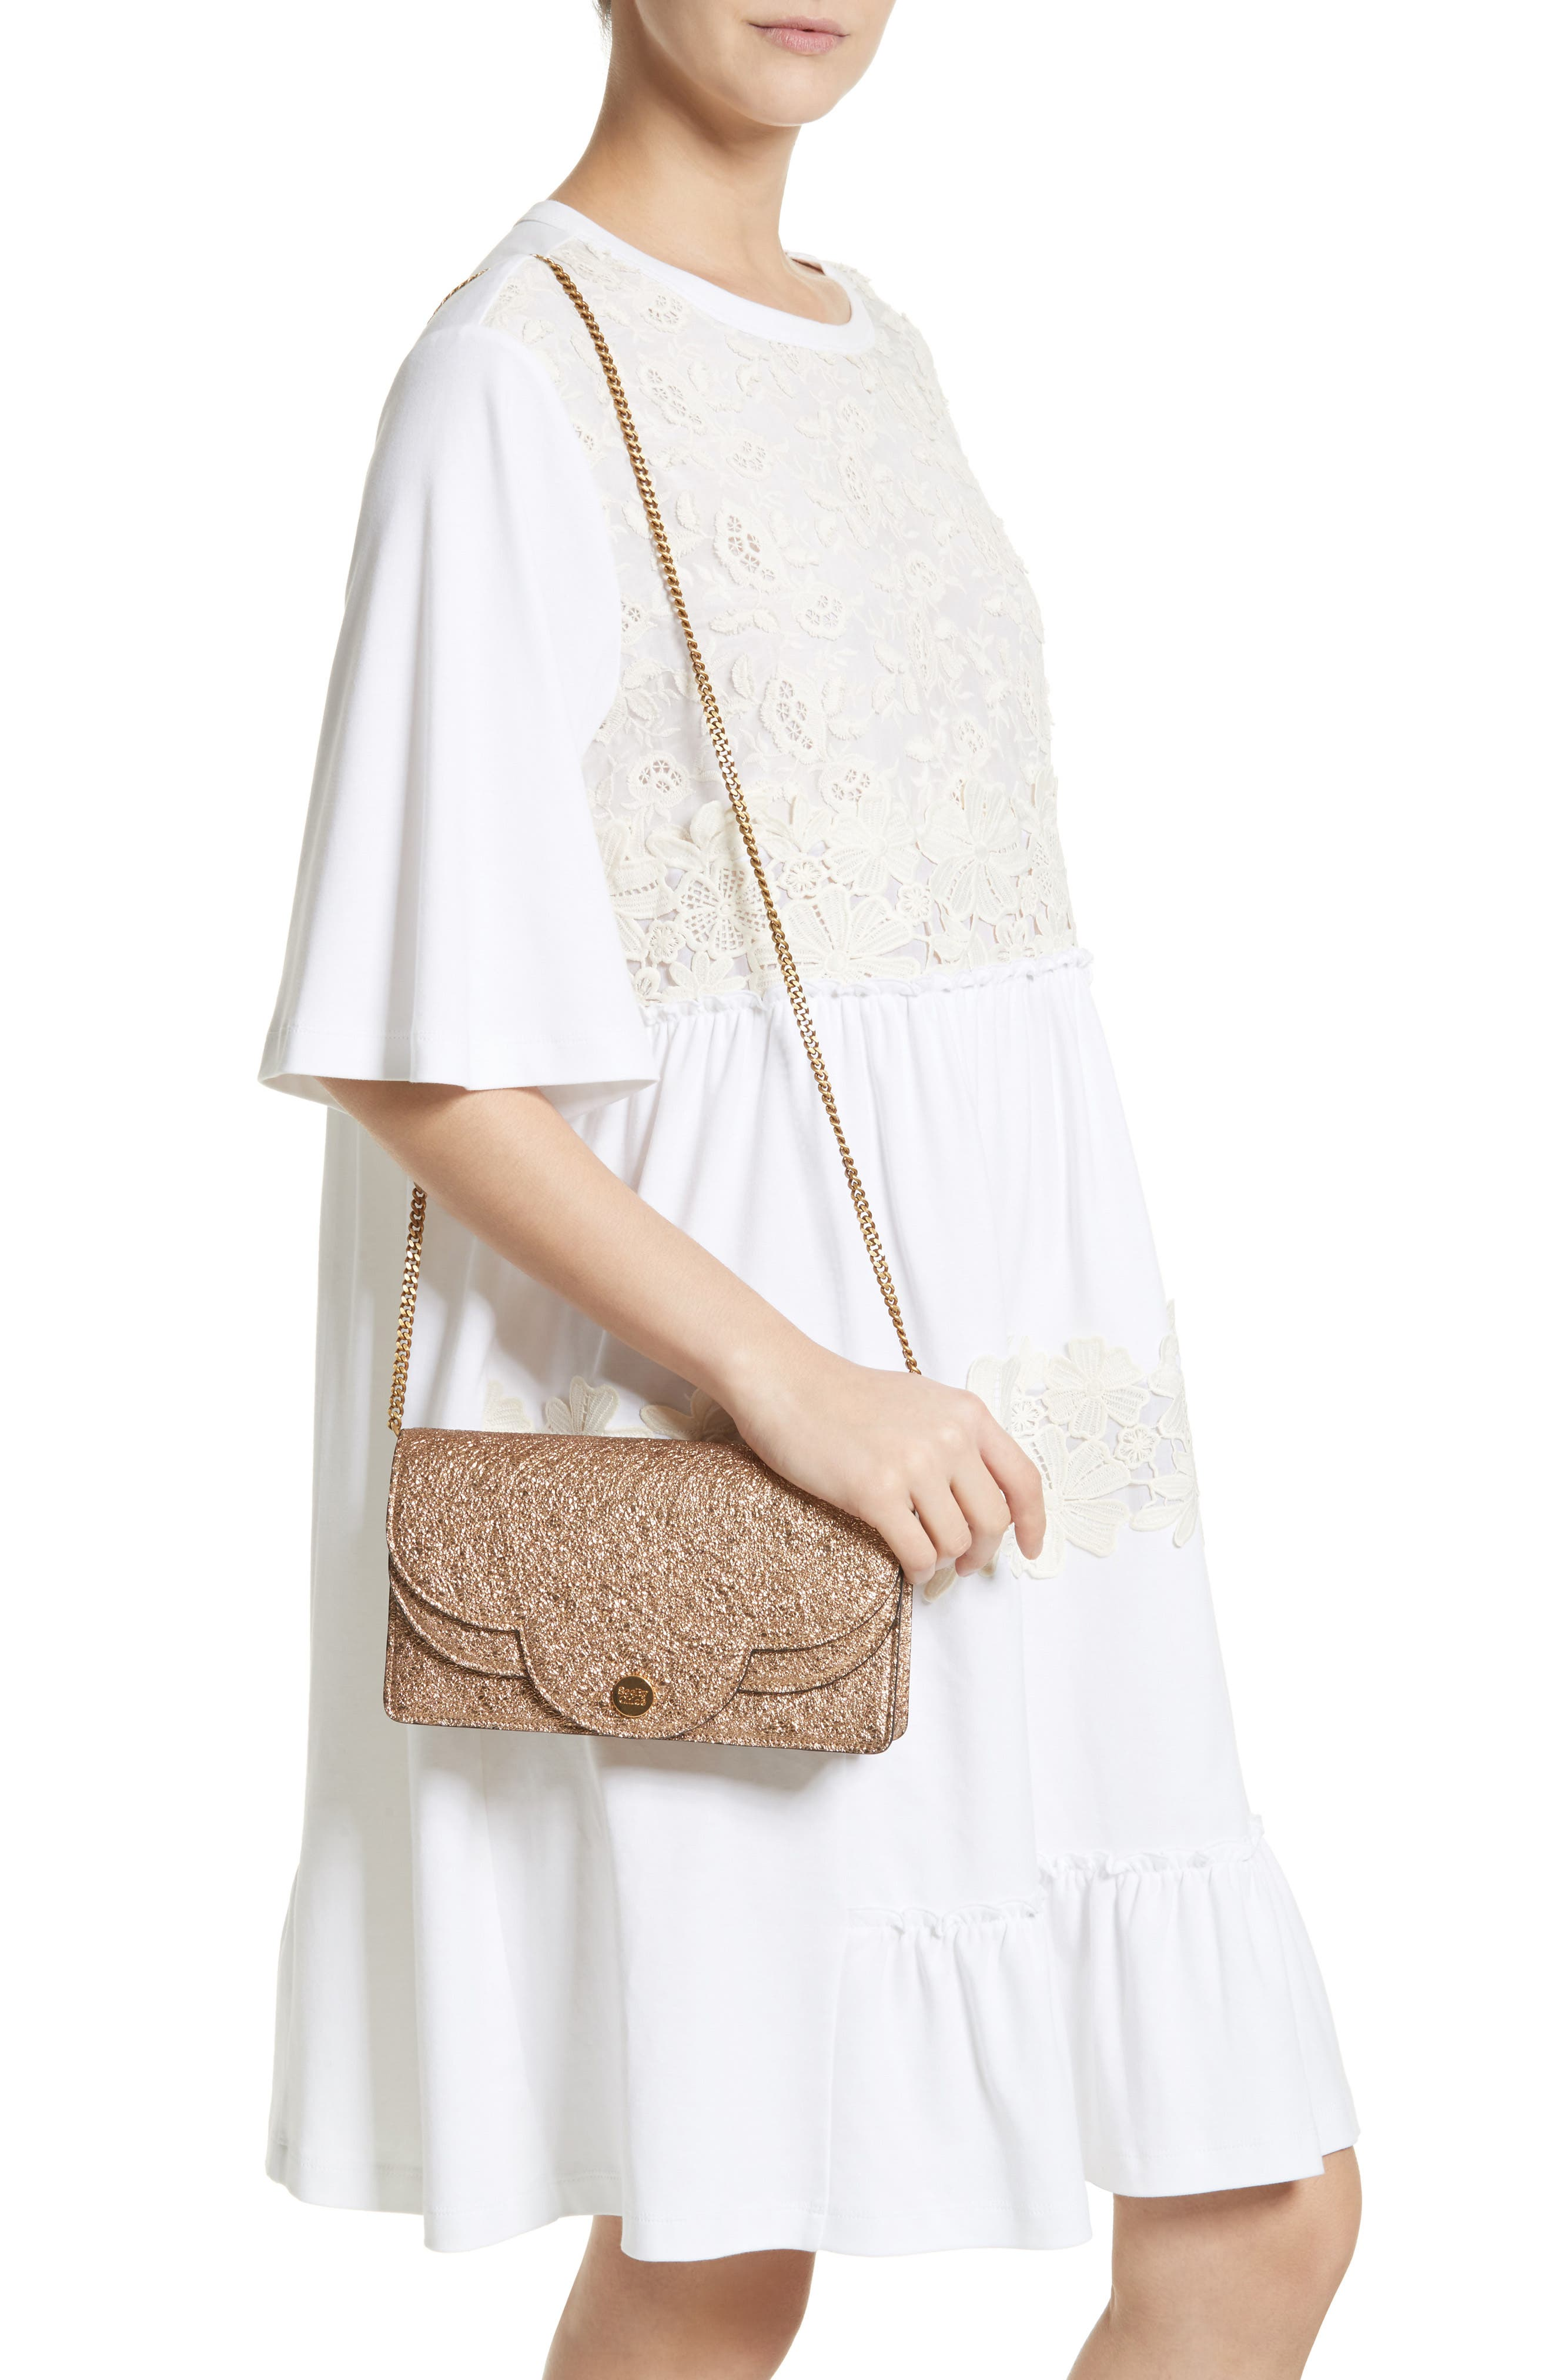 SEE BY CHLOÉ,                             Polina Metallic Leather Crossbody Clutch,                             Alternate thumbnail 3, color,                             220